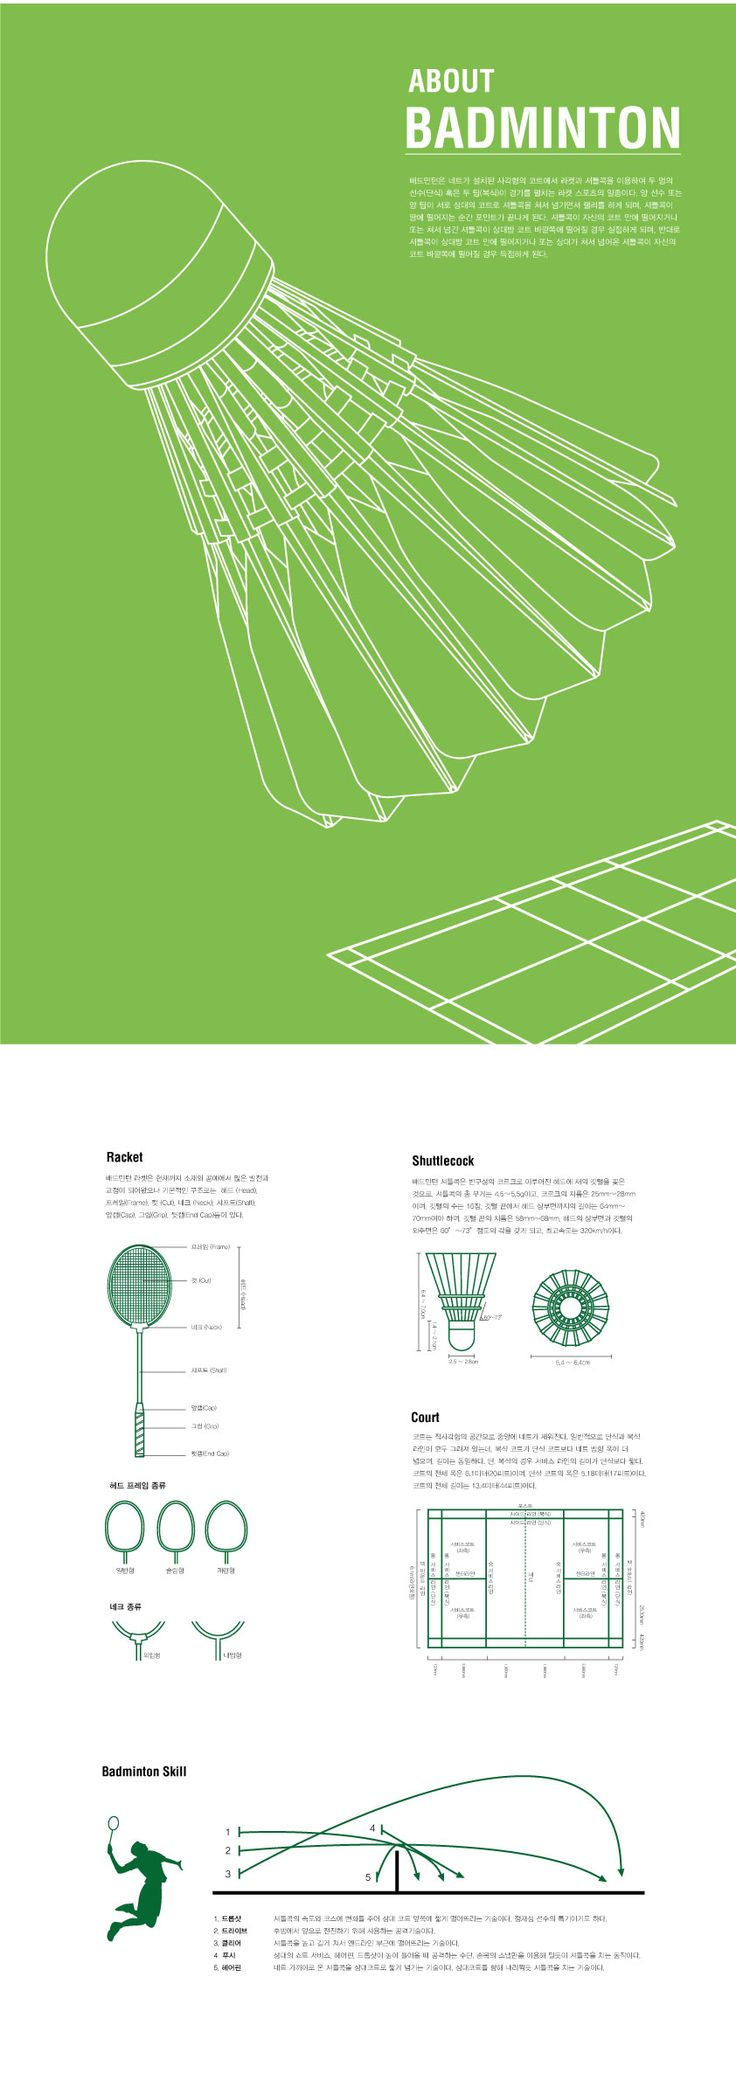 8 best manuals images on pinterest info graphics infographic and rh pinterest com acr manual on contrast acr manual on contrast media 2018